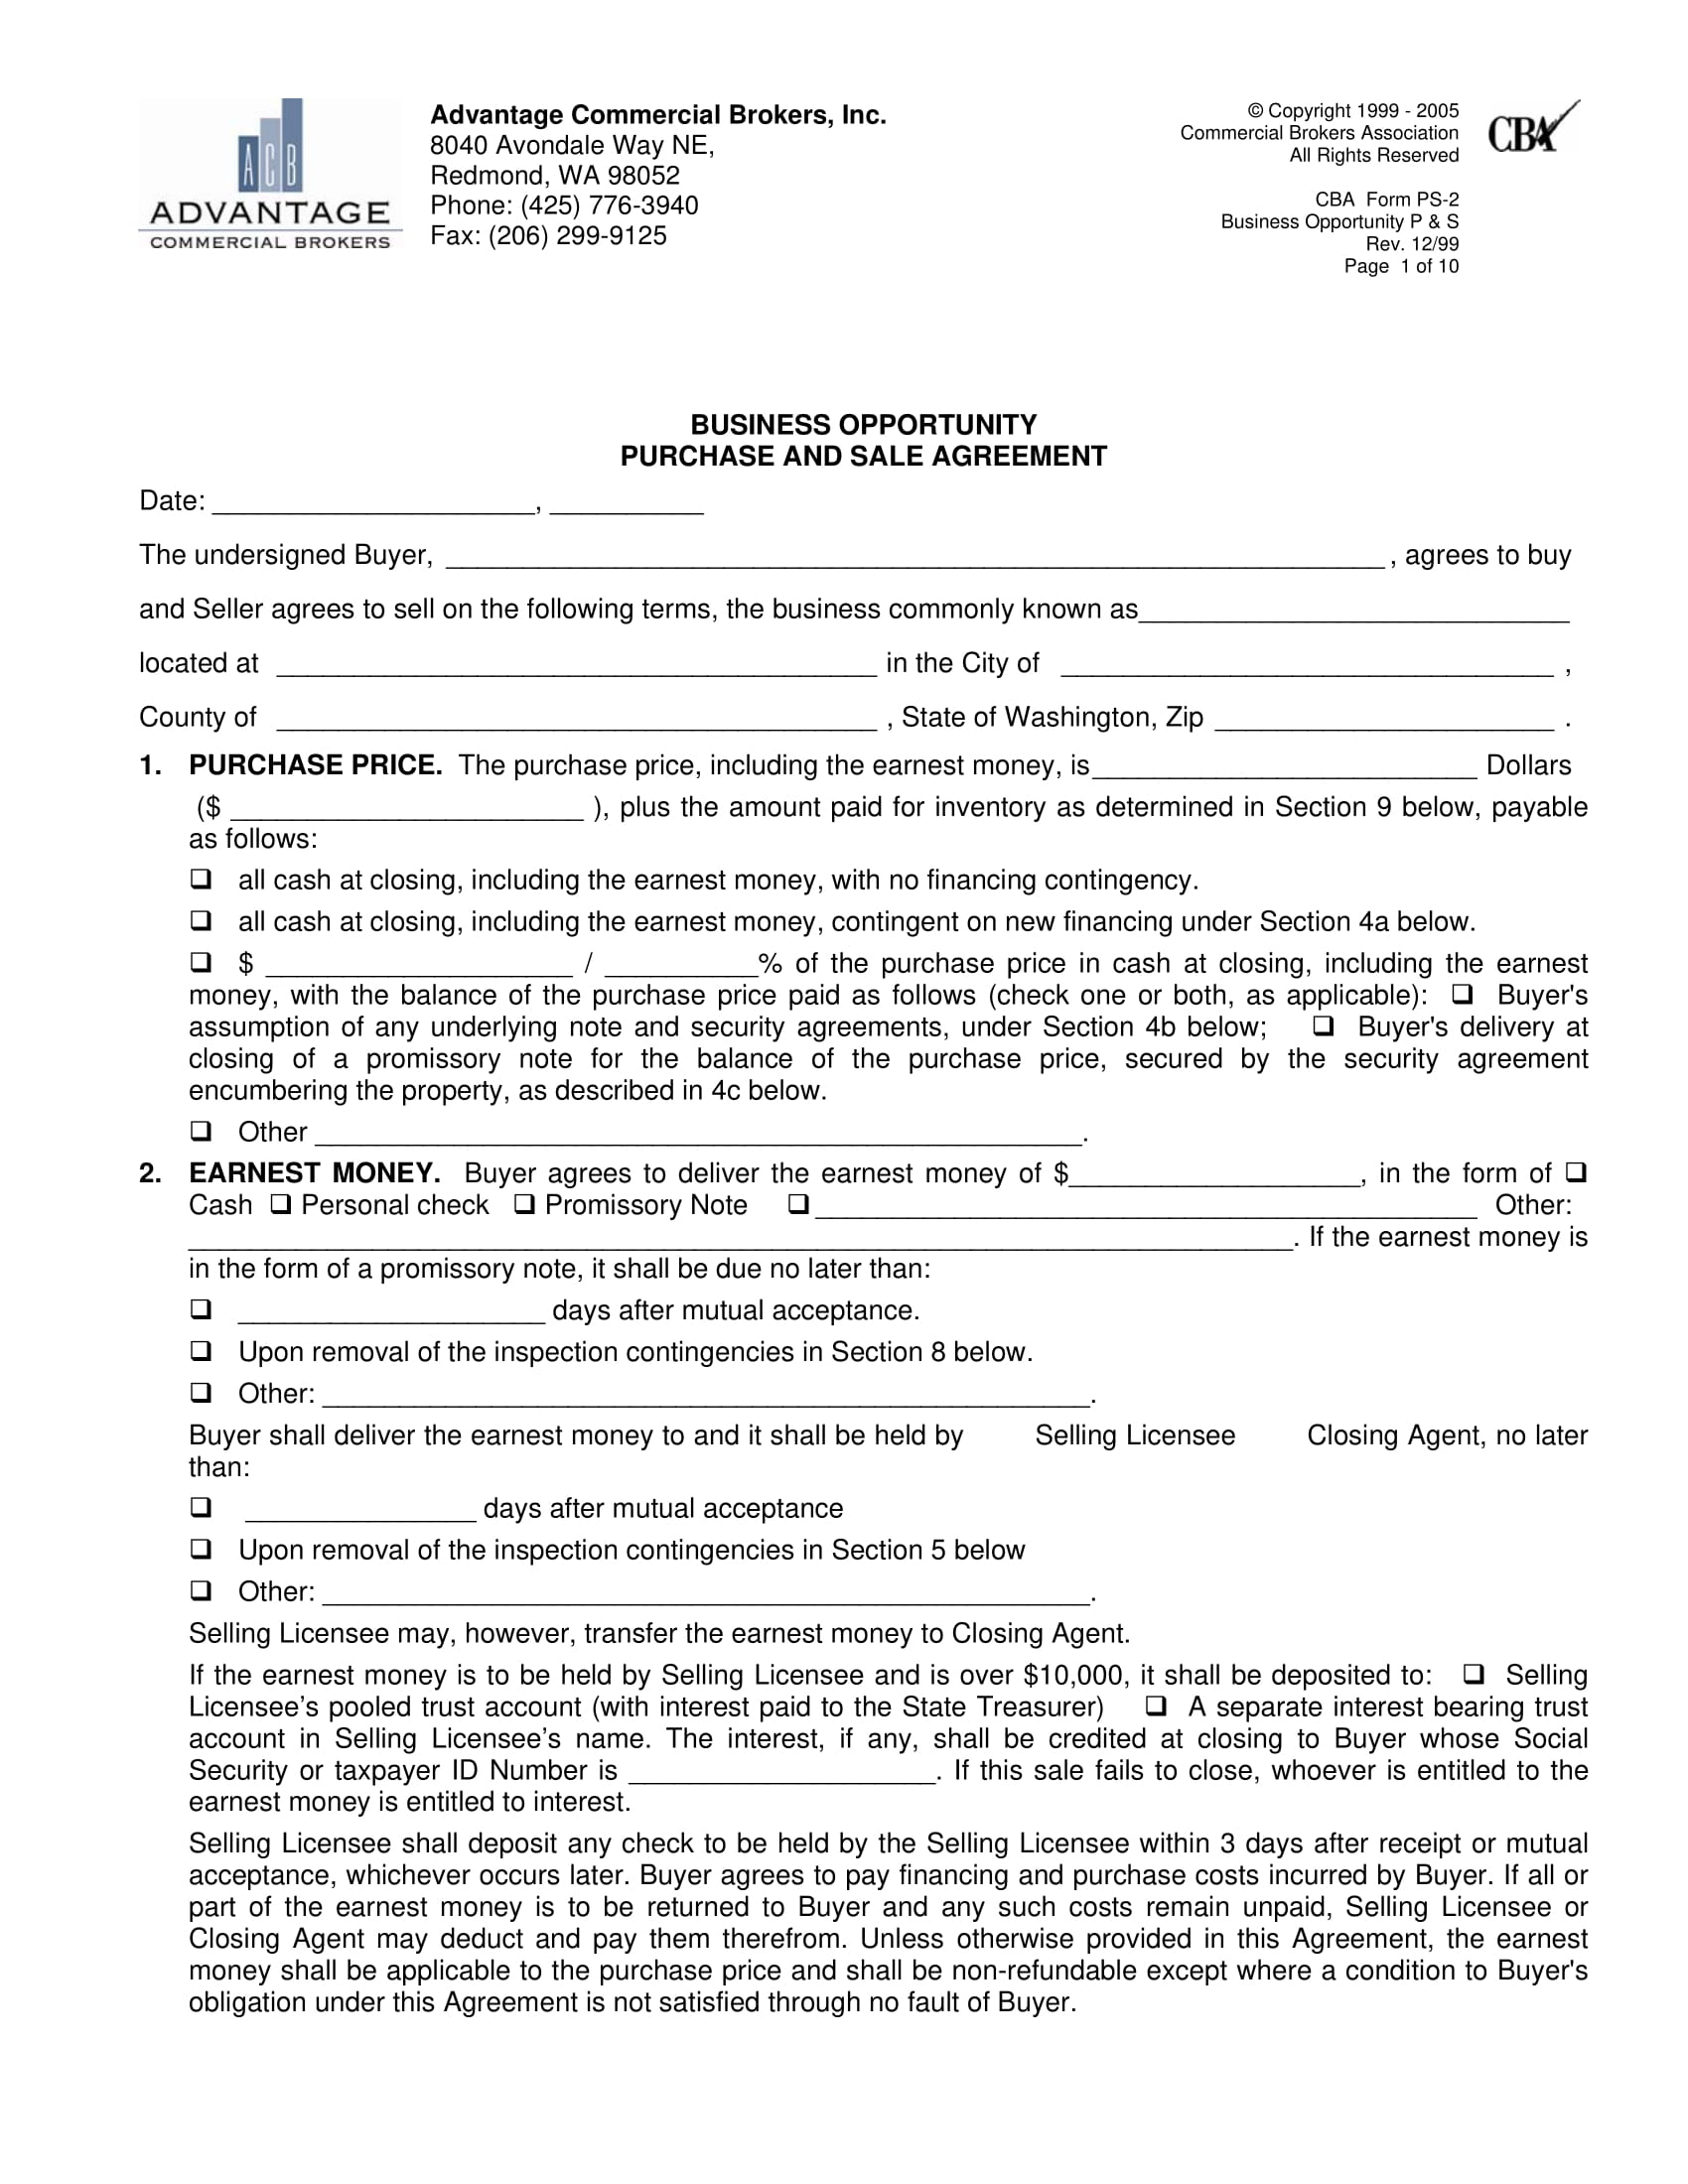 business opportunity sale agreement contract form 01